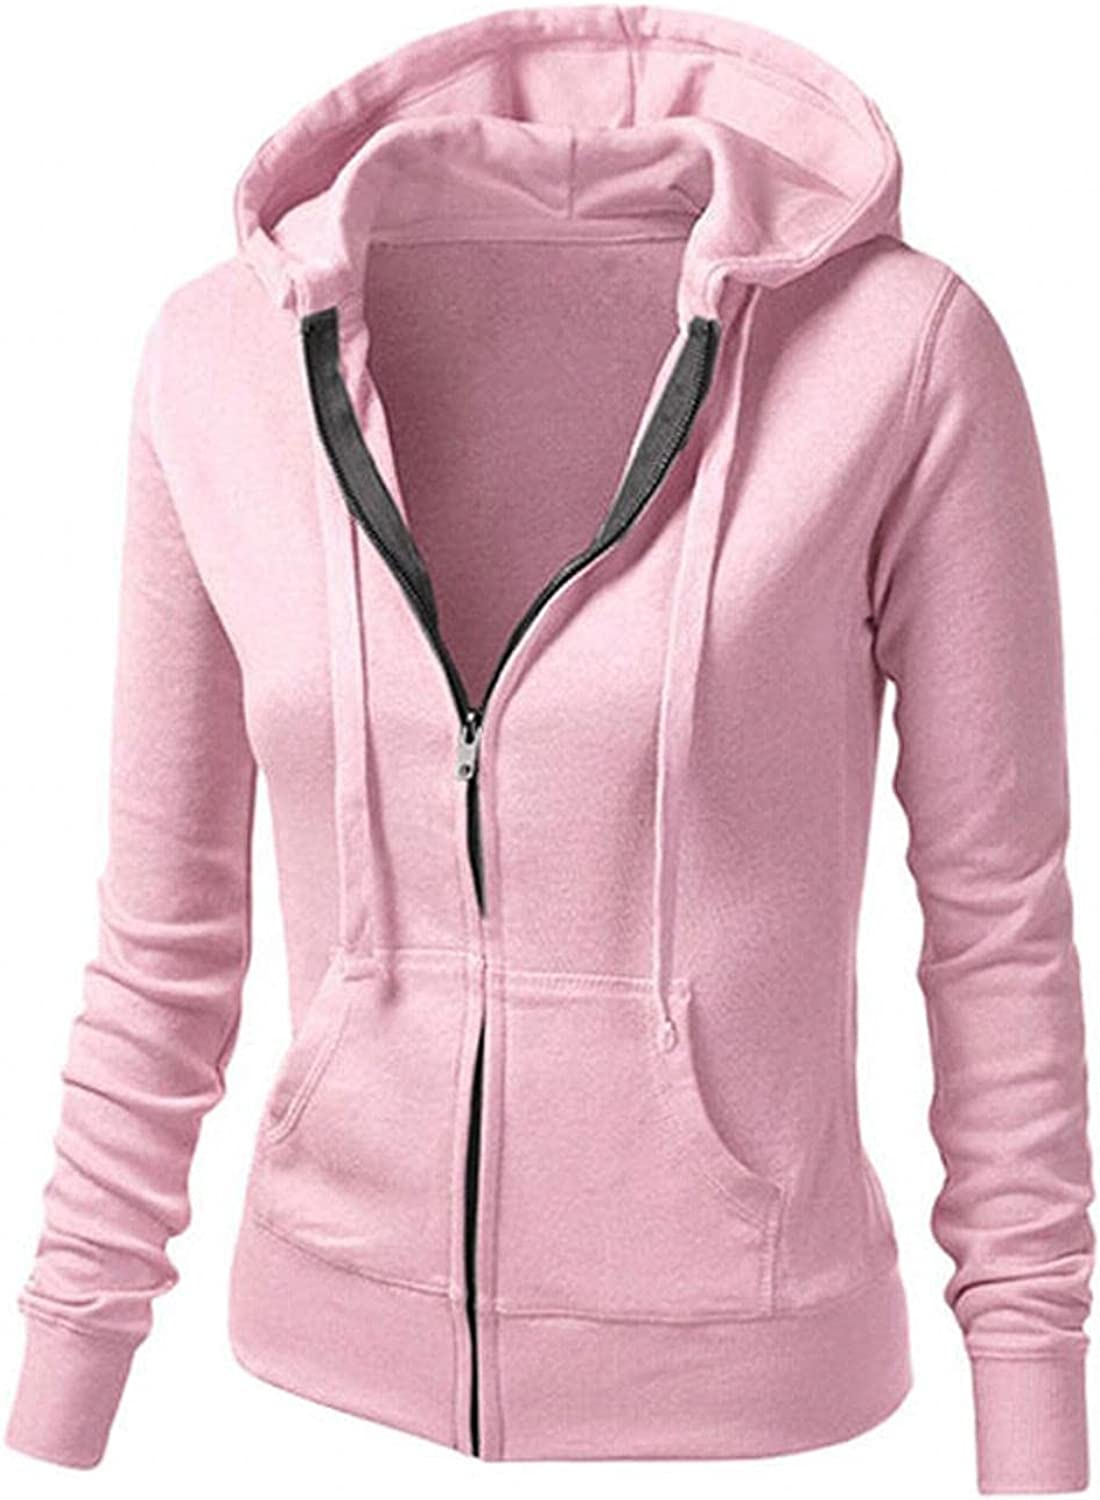 Womens Hoodies,Women Hoodies with Zipper Plus Size Aesthetic Fashine with Pockets Solid Color Sweatshirt Coat